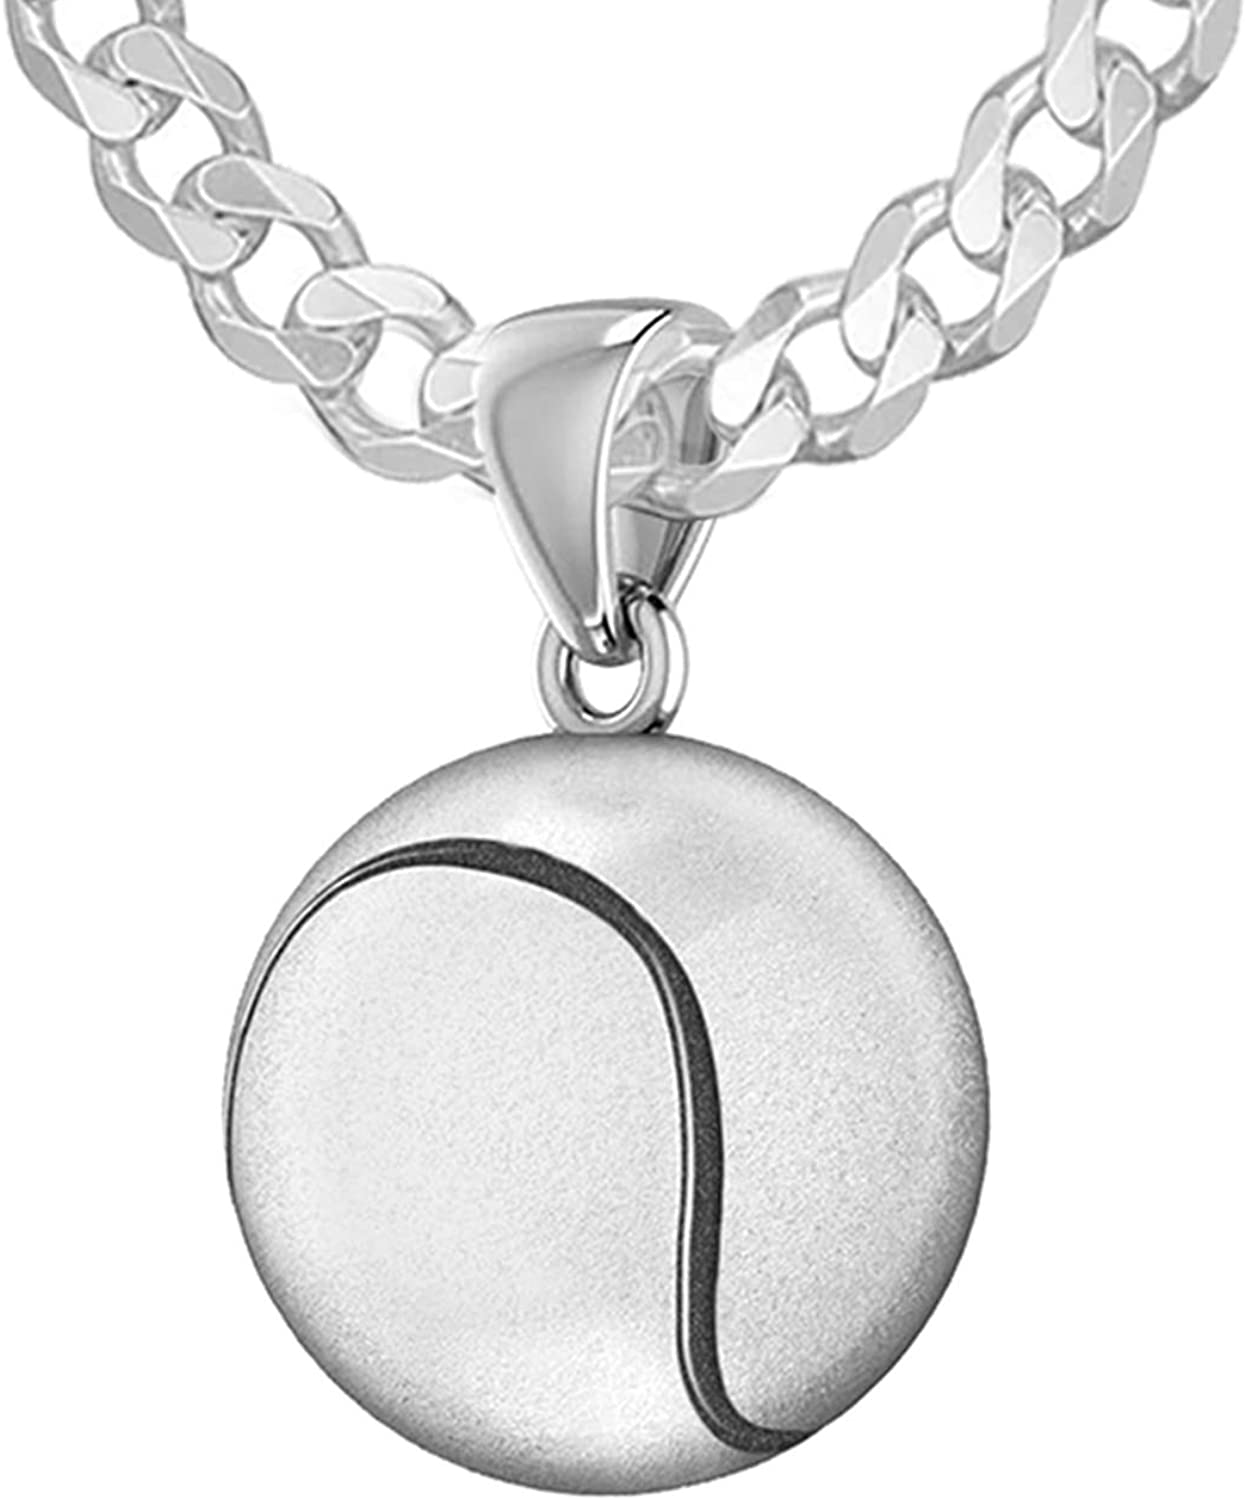 18in to 24in US Jewels And Gems Ladies 925 Sterling Silver 13mm 3D Small Tennis Ball Sports Charm Pendant Necklace